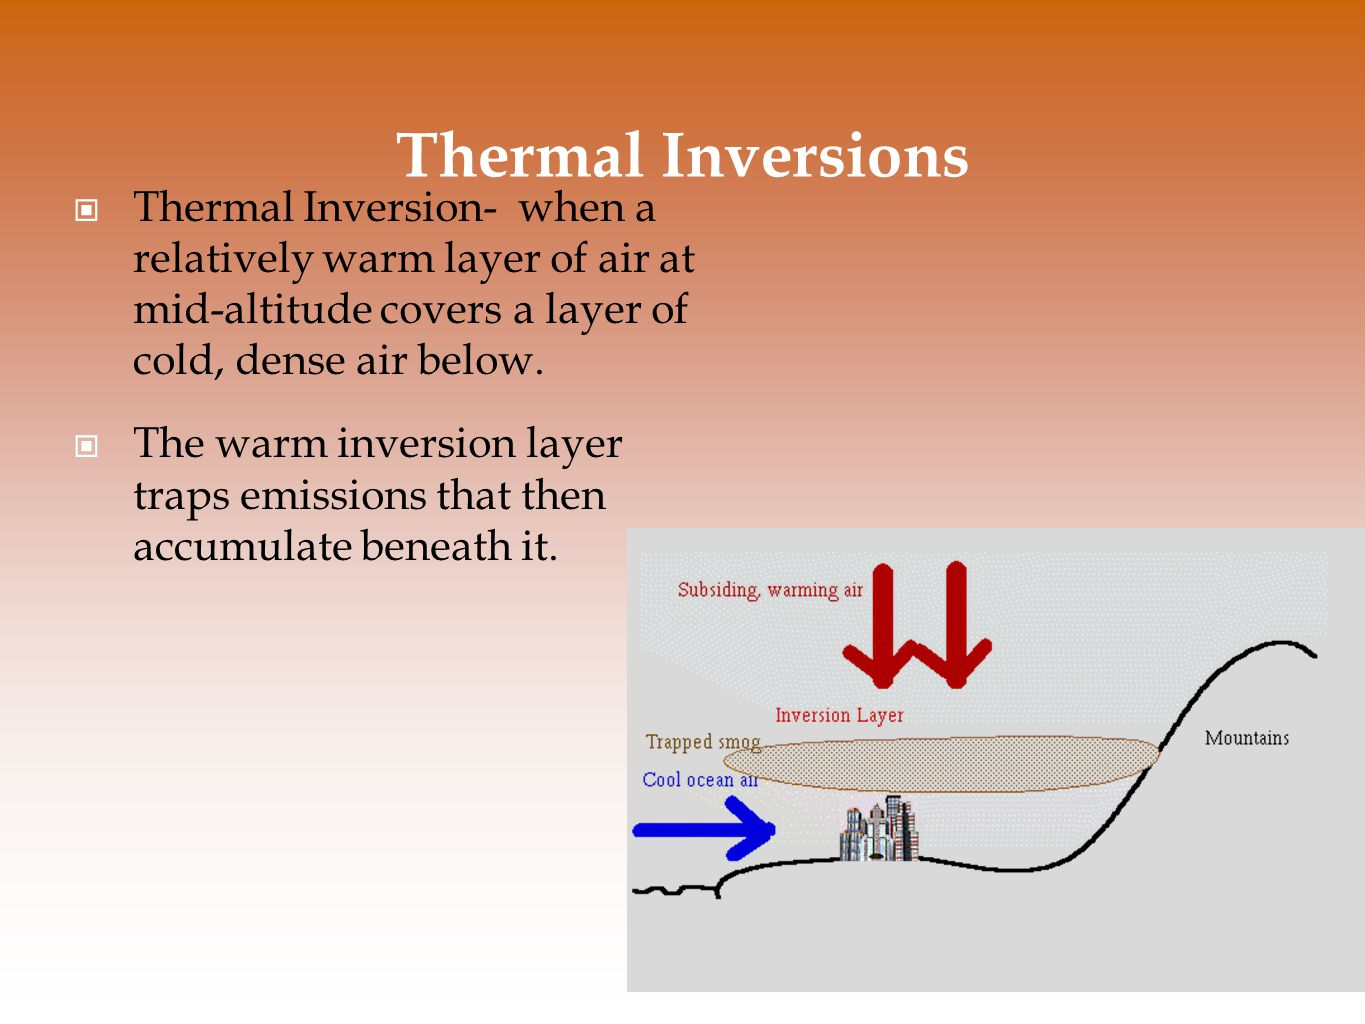 Thermal Inversions Thermal Inversion- when a relatively warm layer of air at mid-altitude covers a layer of cold, dense air below. The warm inversion